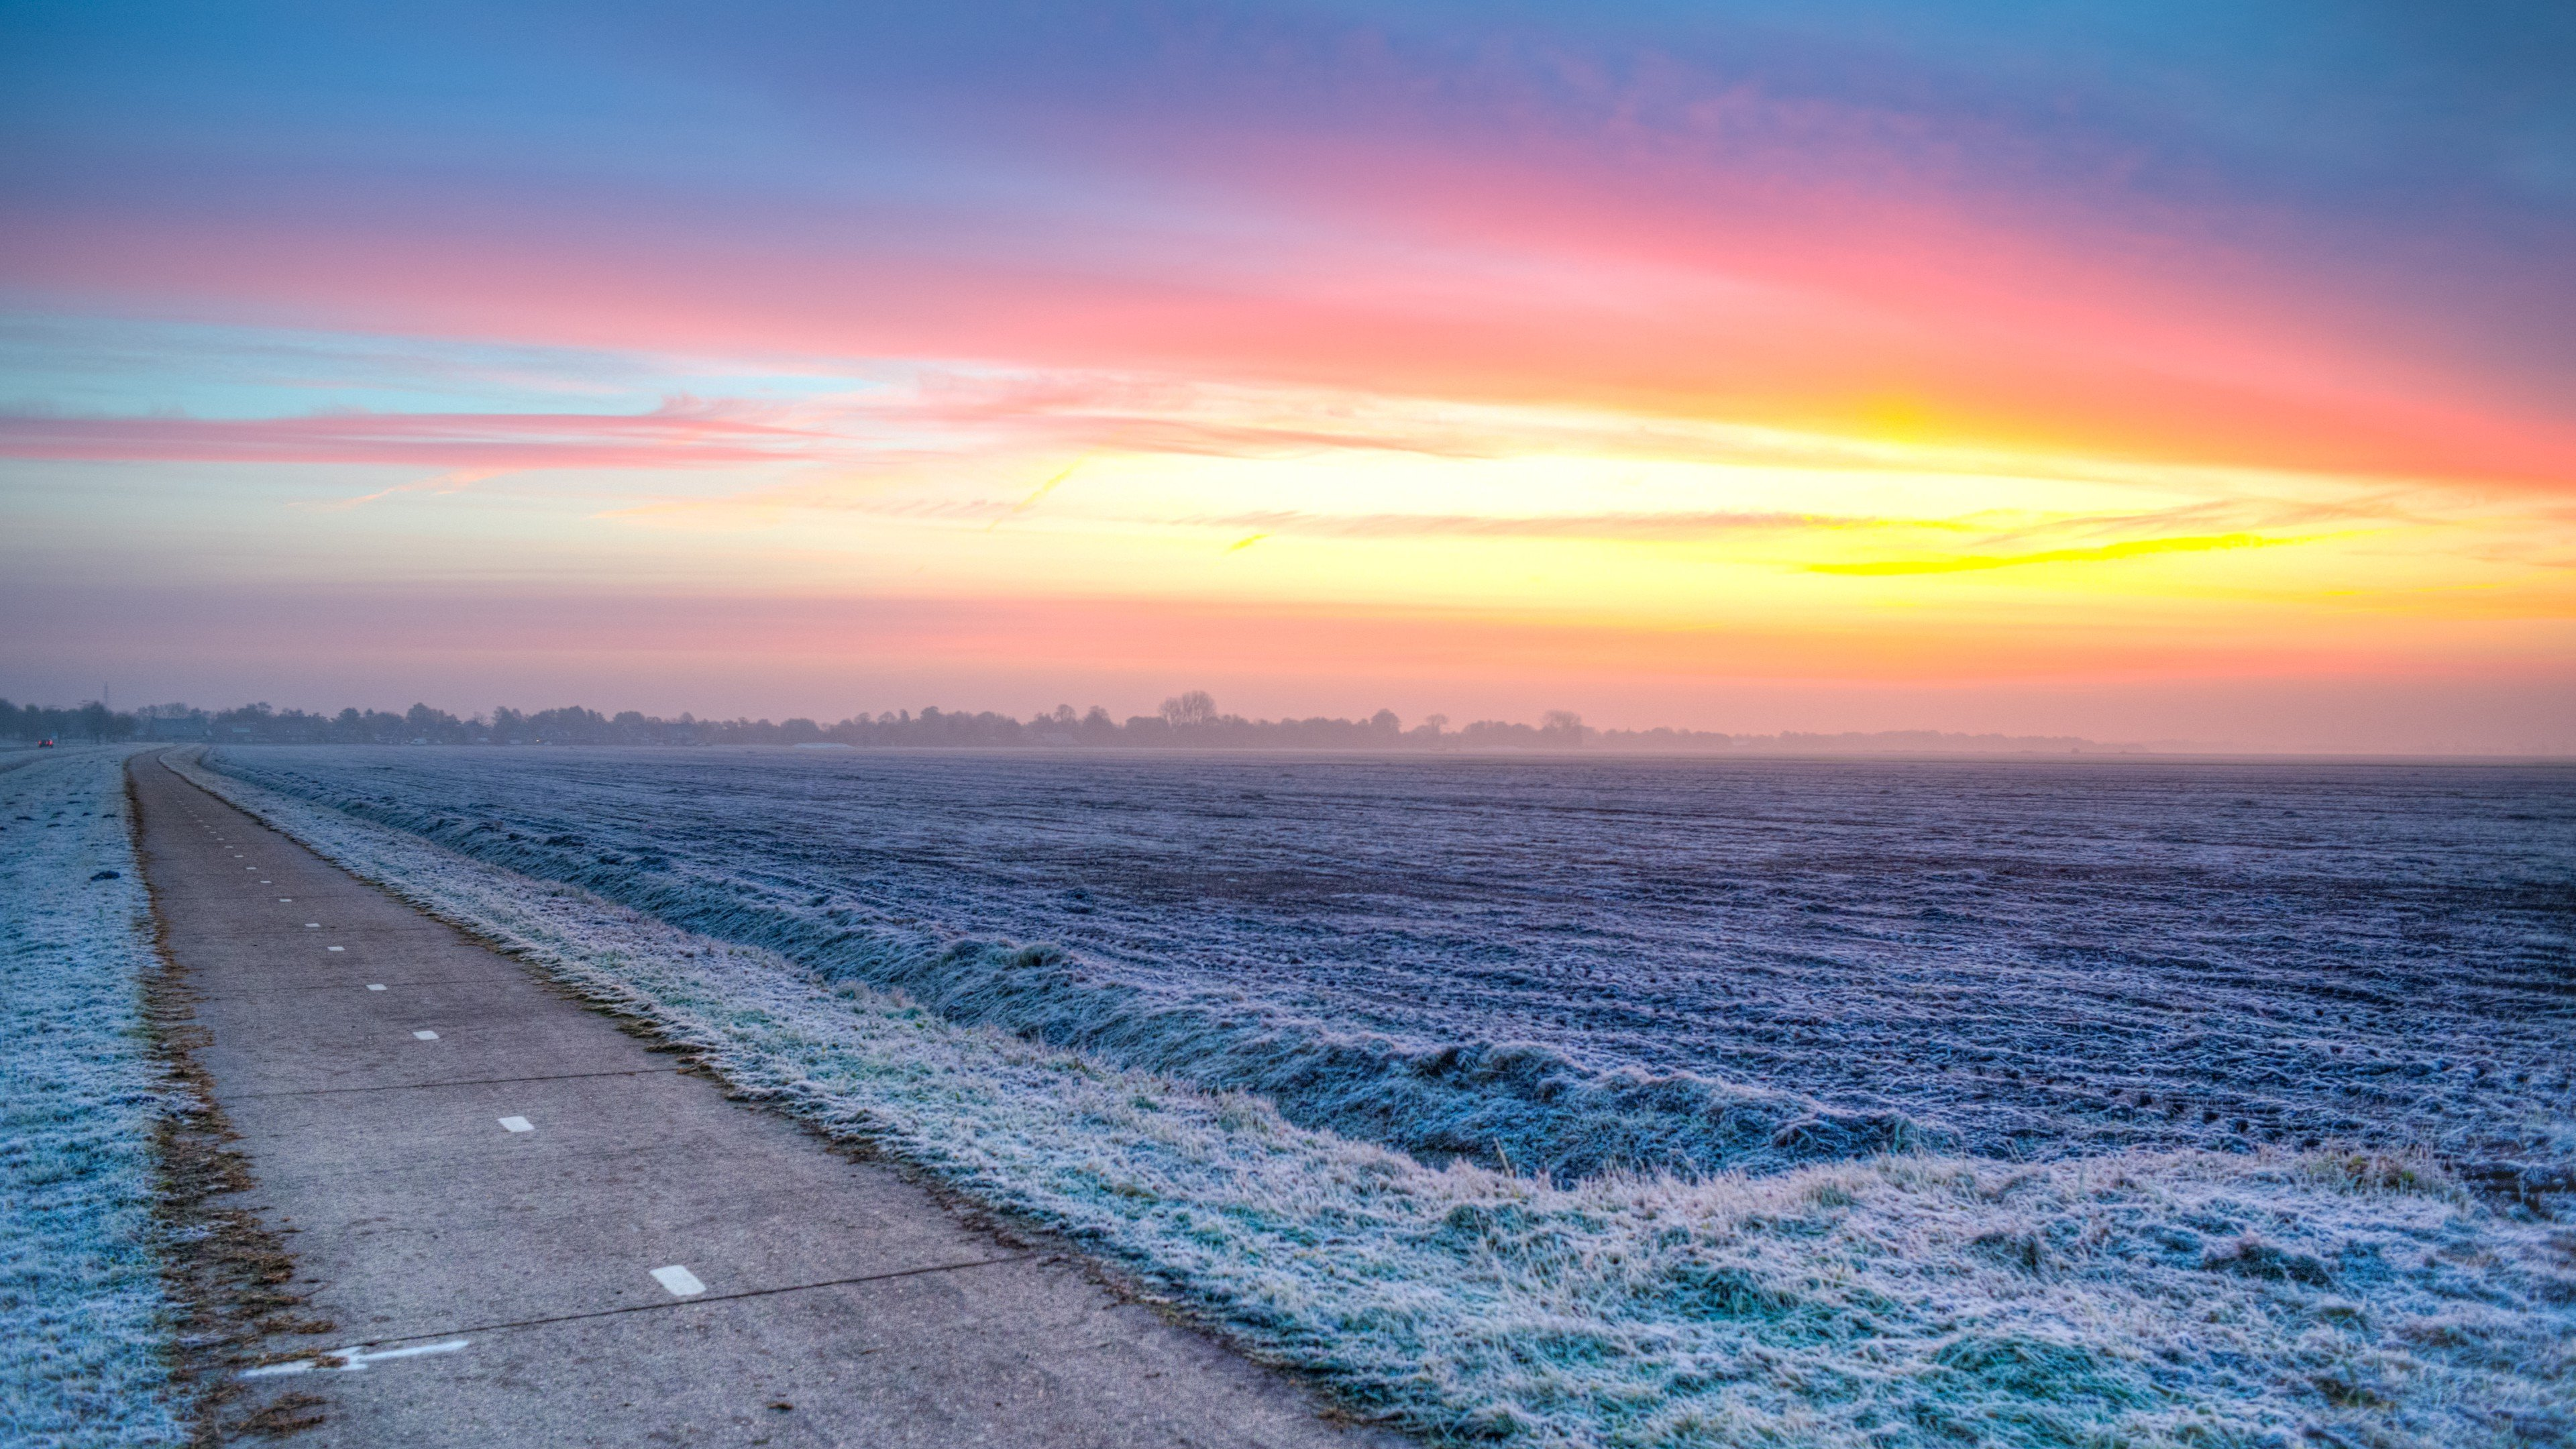 Landscape on a Frosty Morning wallpaper